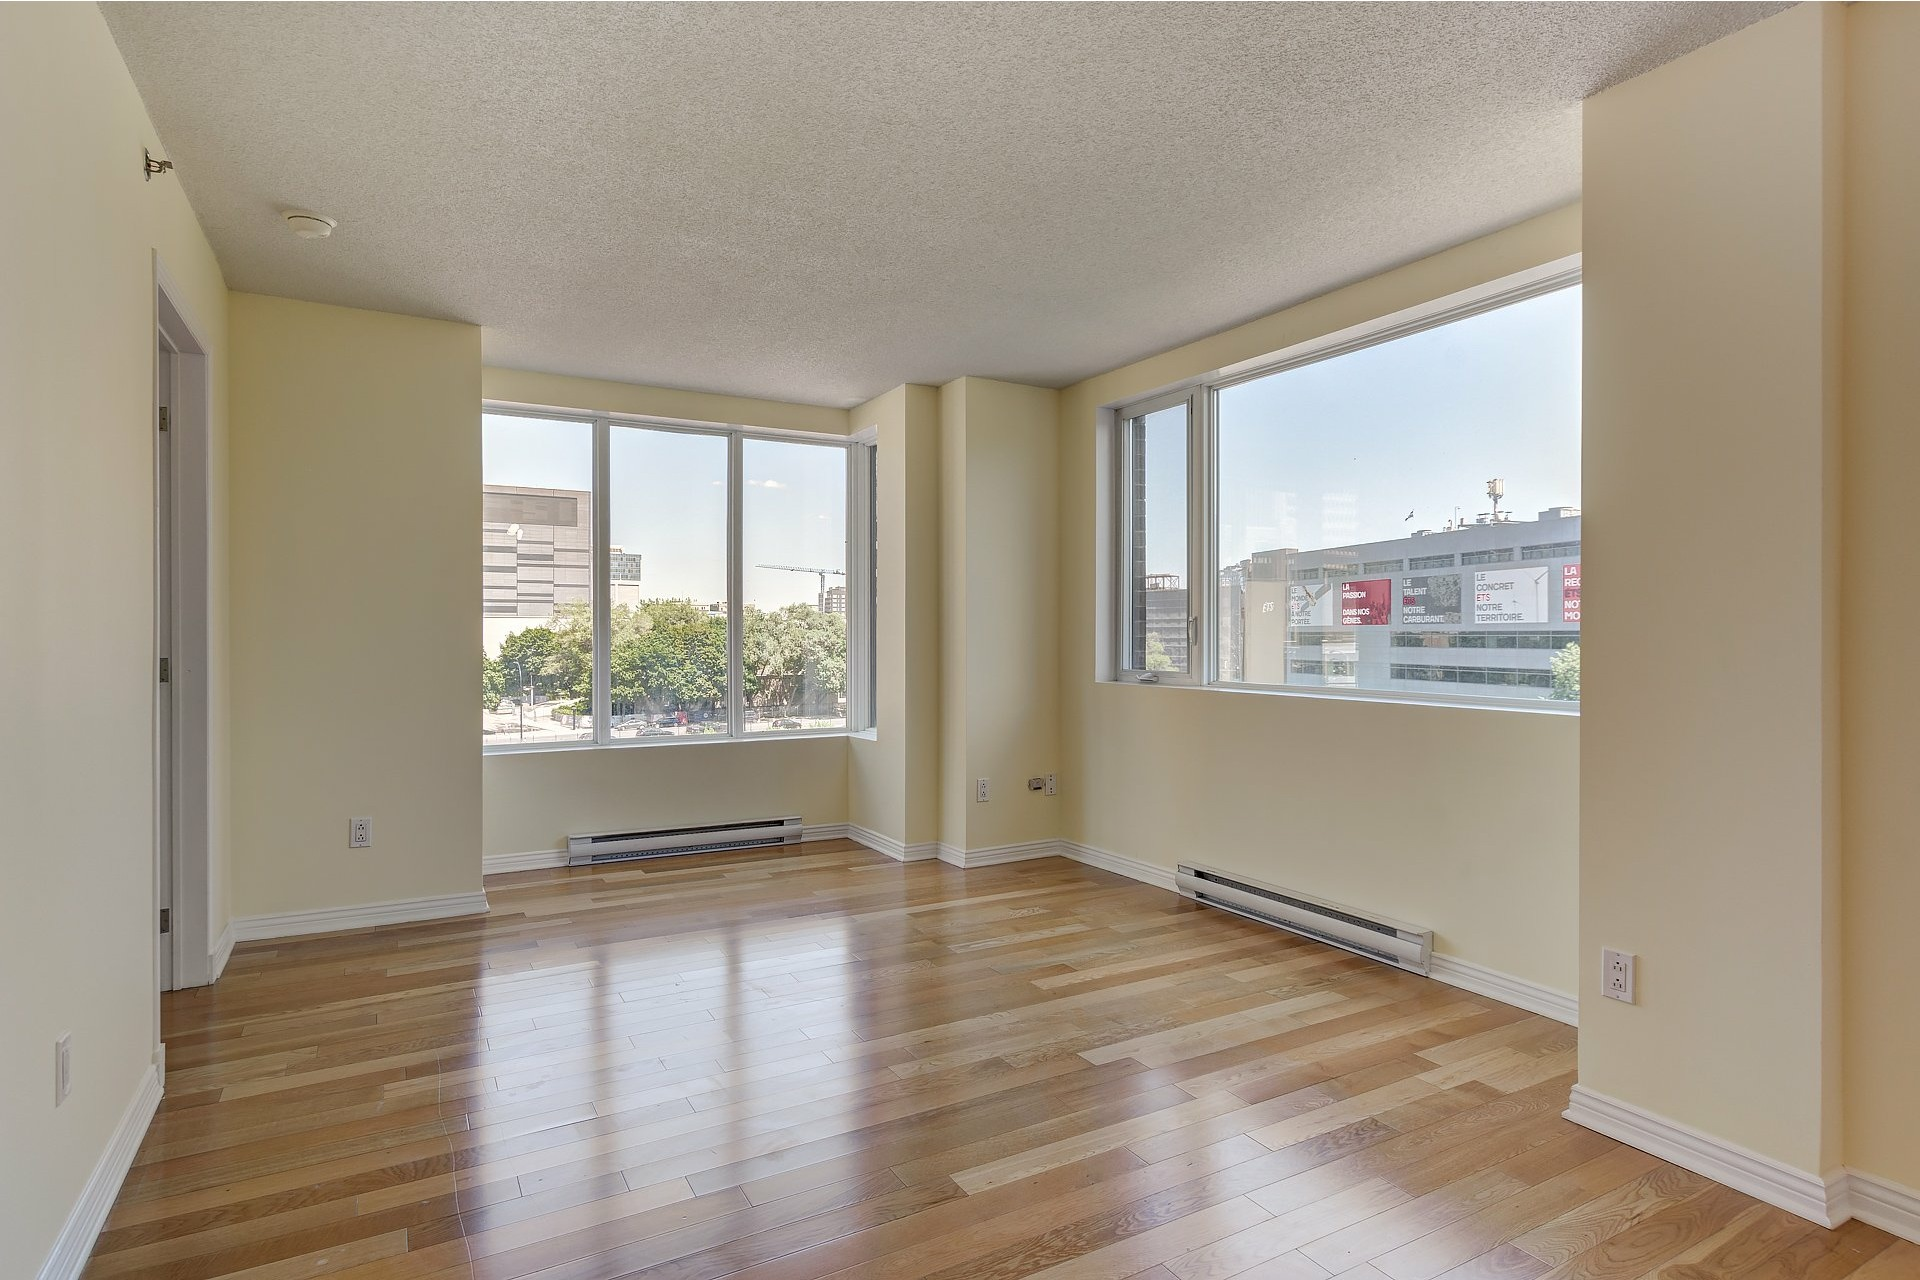 image 7 - Apartment For sale Ville-Marie Montréal  - 4 rooms